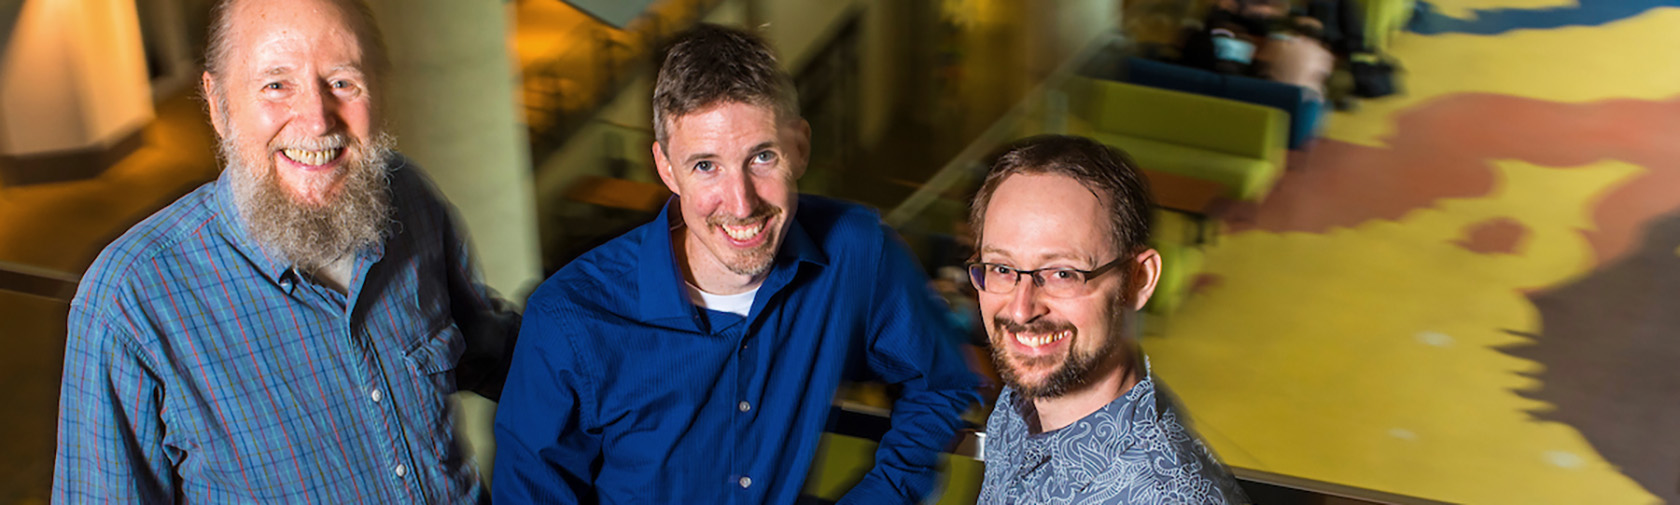 University of Alberta computing science professors and artificial intelligence researchers Richard Sutton, Michael Bowling, and Patrick Pilarski.